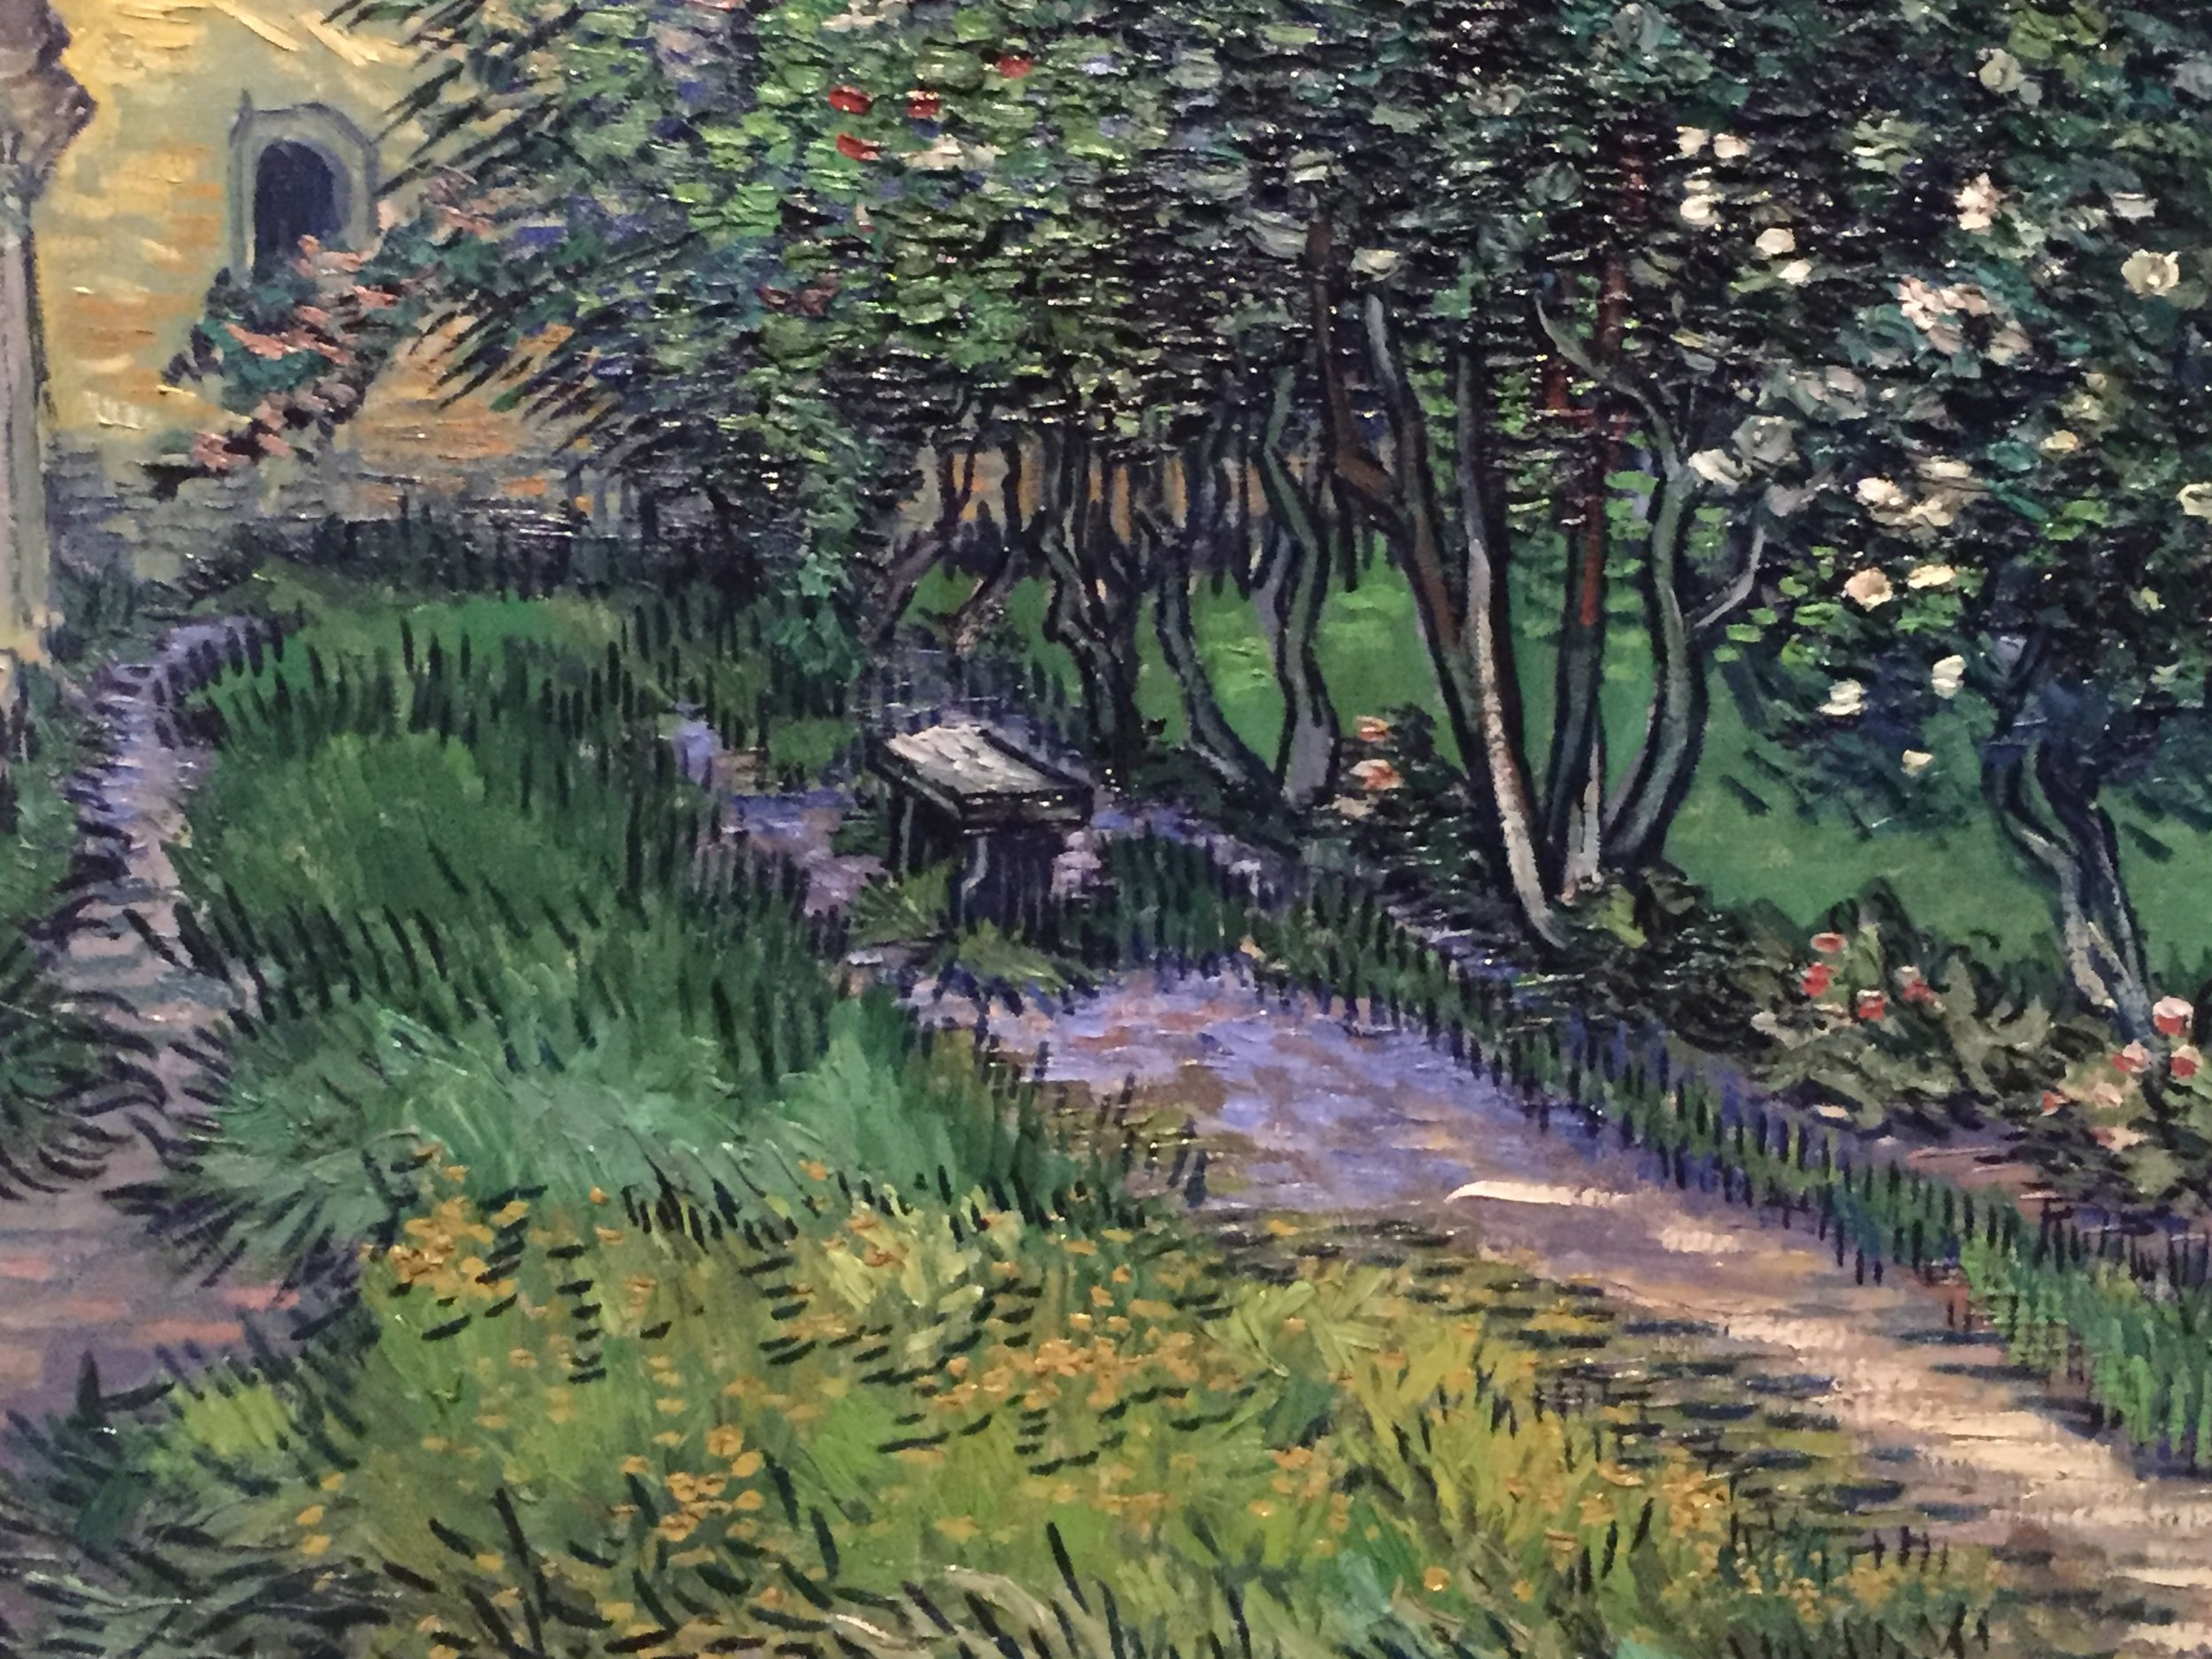 van gogh asylum garden path detail houston.JPG